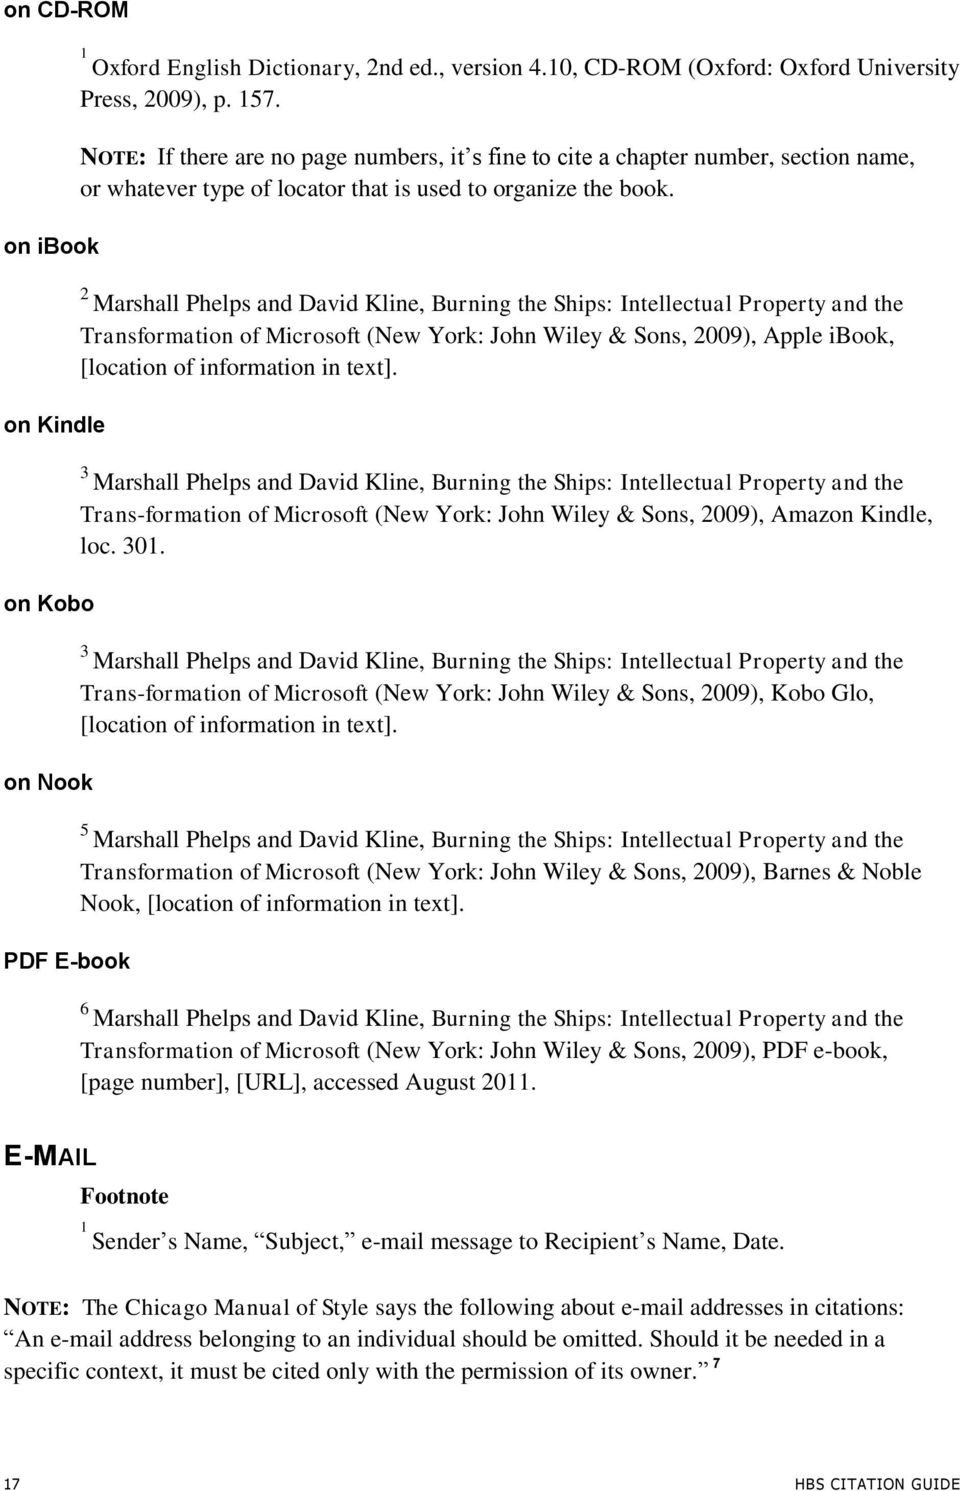 2 Marshall Phelps and David Kline, Burning the Ships: Intellectual Property and the Transformation of Microsoft (New York: John Wiley & Sons, 2009), Apple ibook, [location of information in text].